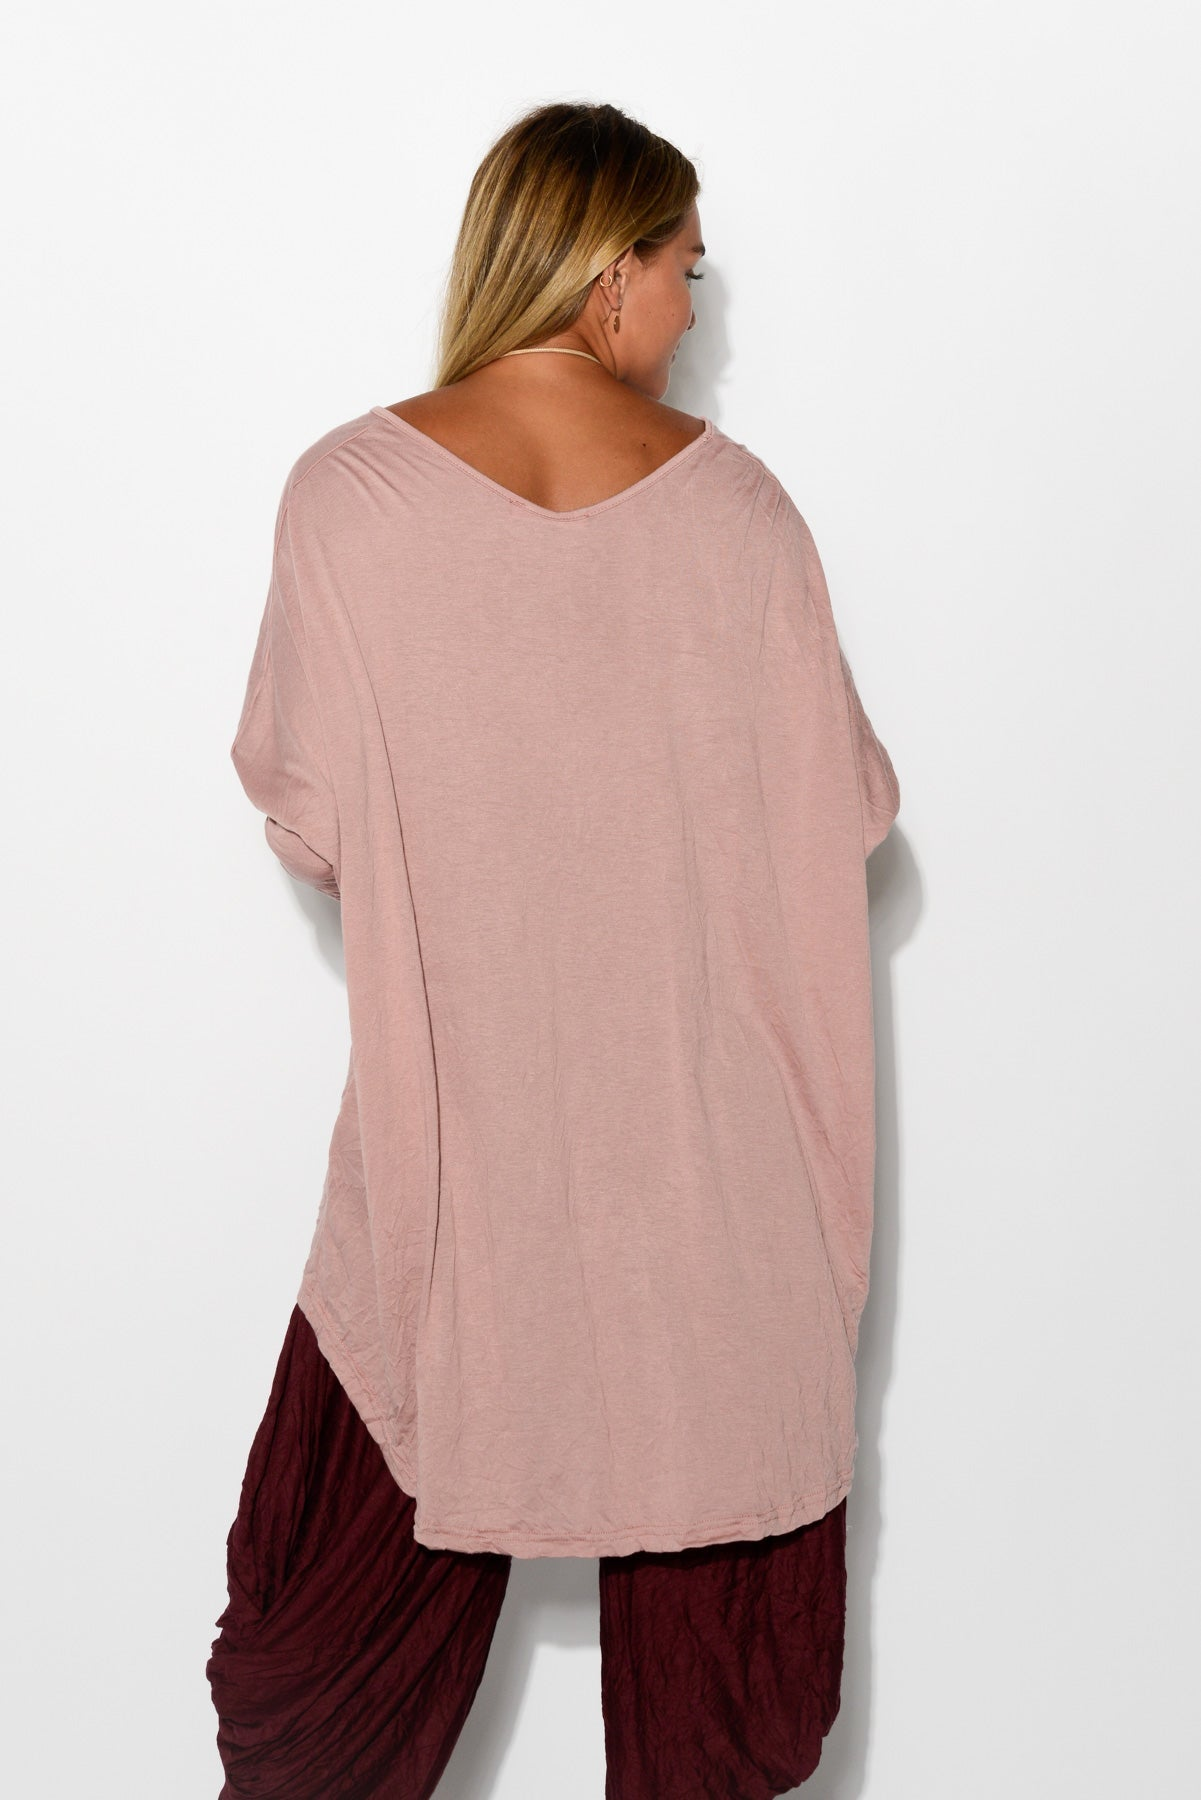 Blush Oversized Cotton Hi Lo Top - Blue Bungalow